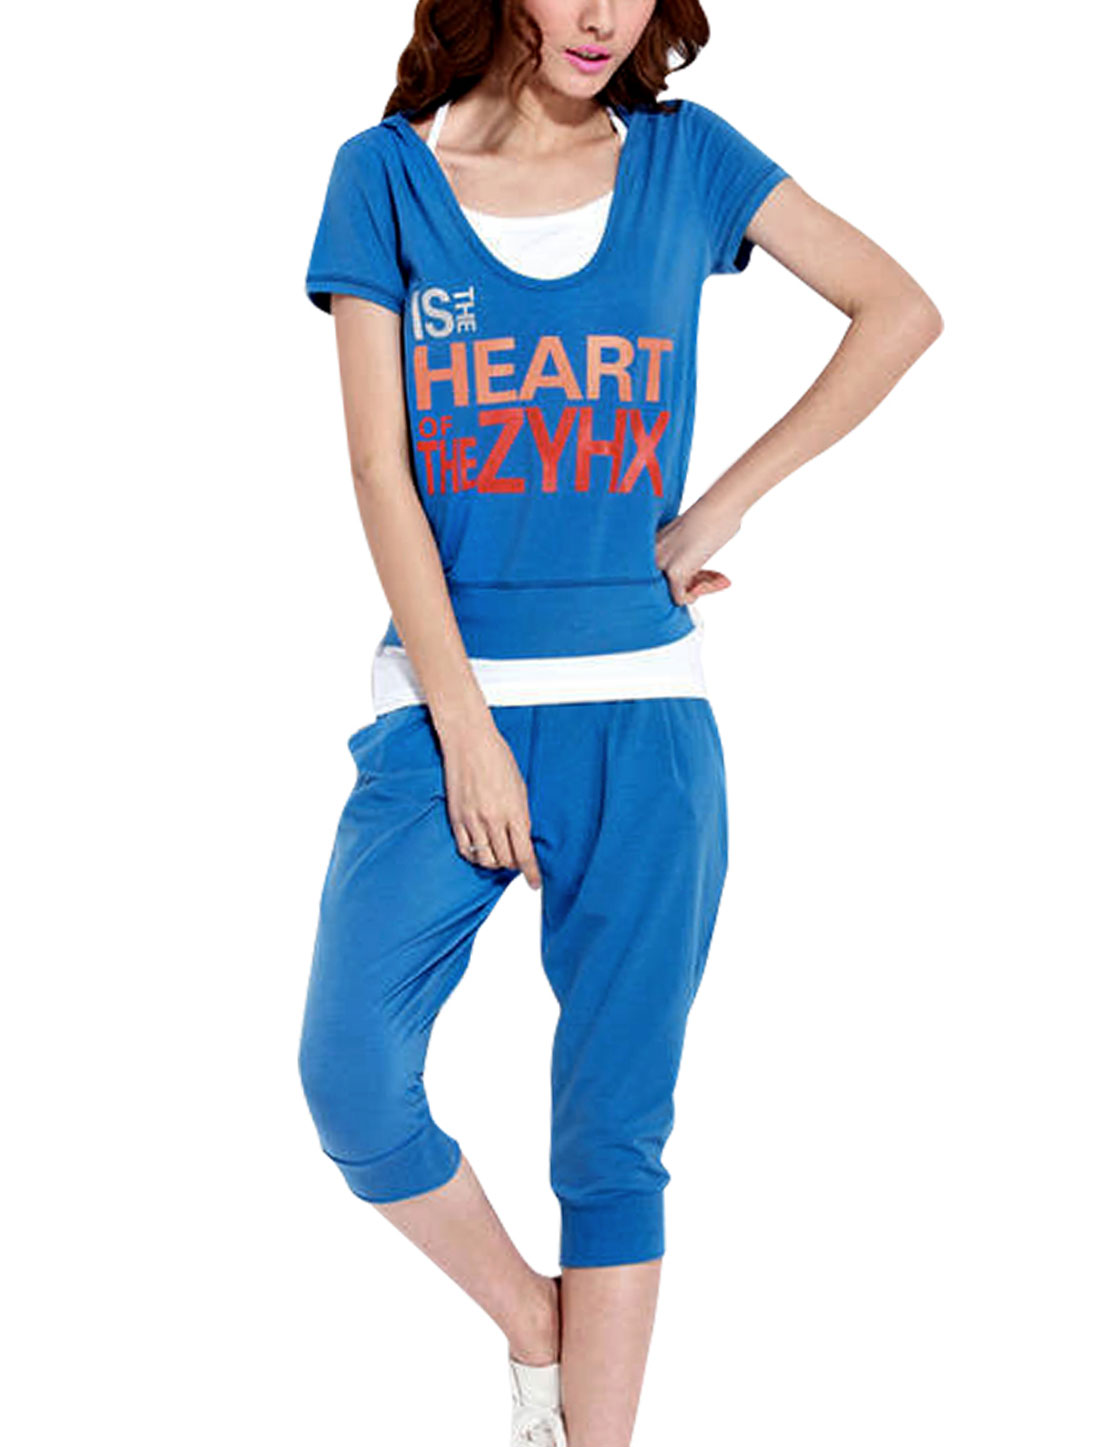 Lady Pullover Letters Prints Pockets Three Pieces Set Sportsuit Royal Blue XS